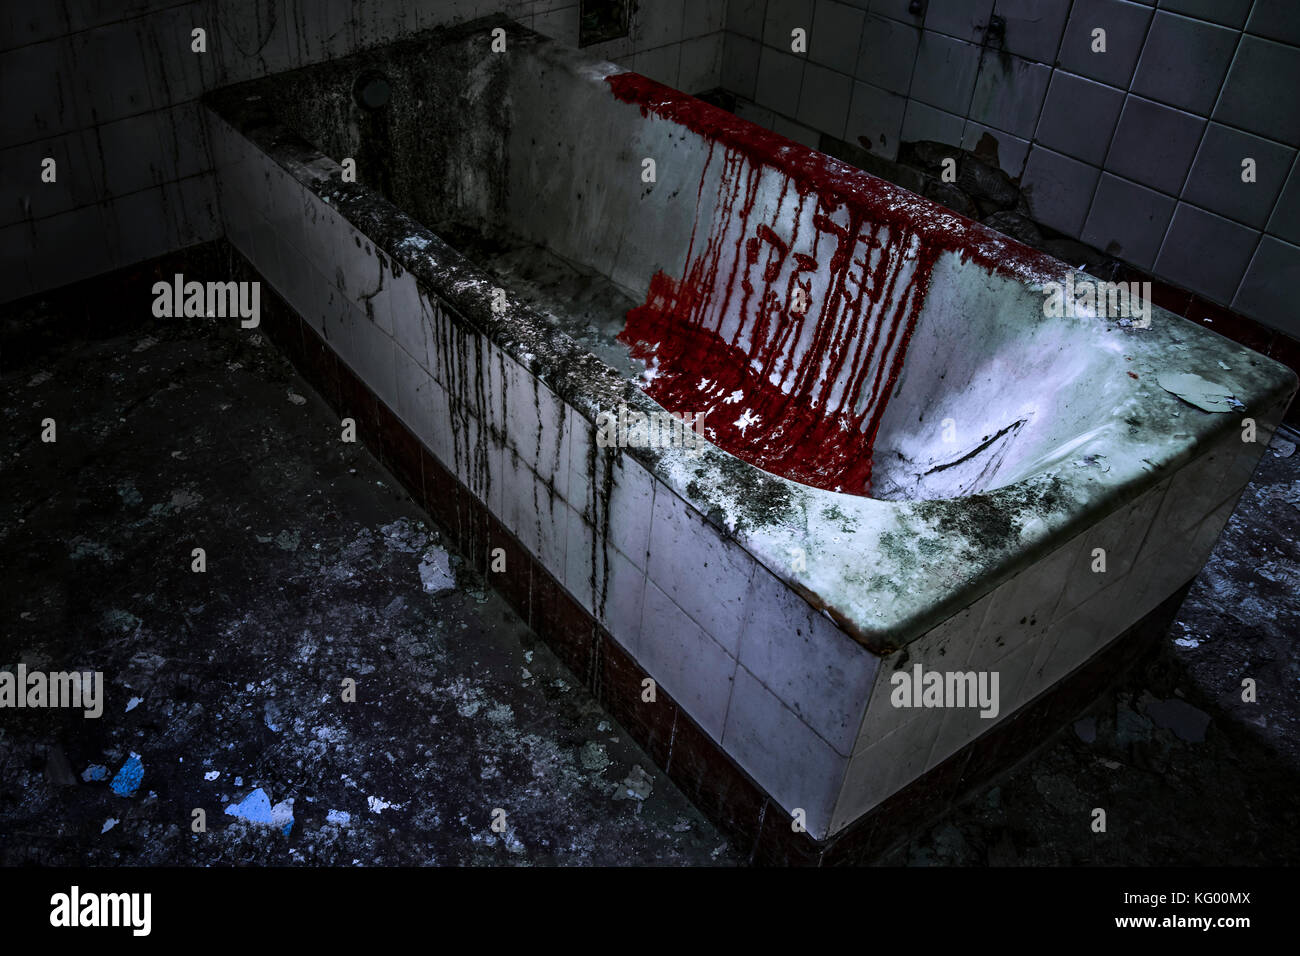 an old tub inside a psychiatric hospital, with a bloody spot - Stock Image